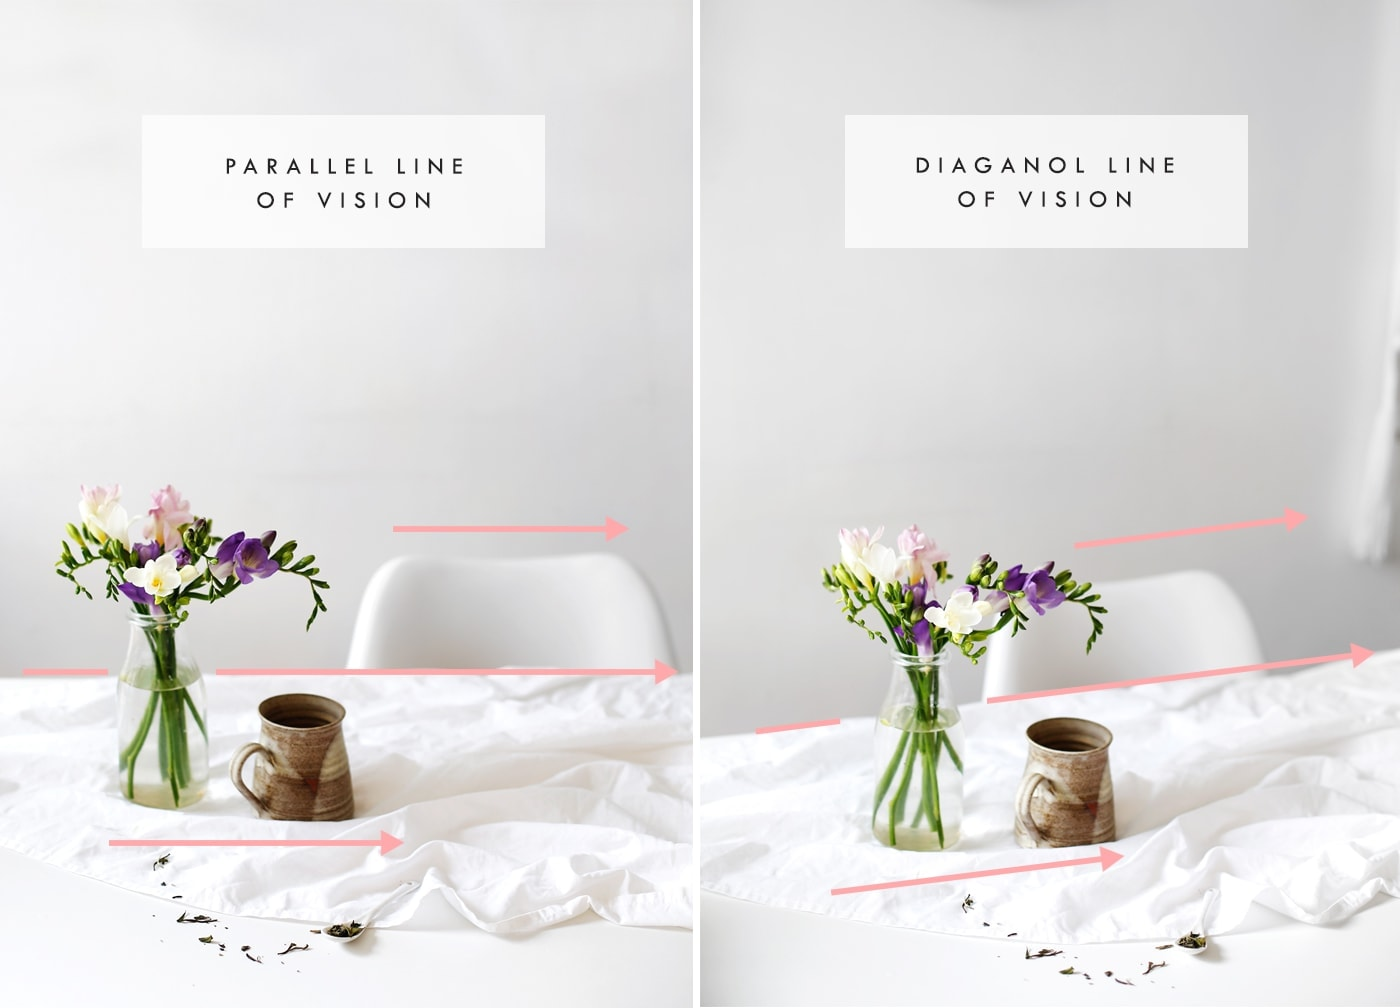 blogger photography tips | angle | line of vision